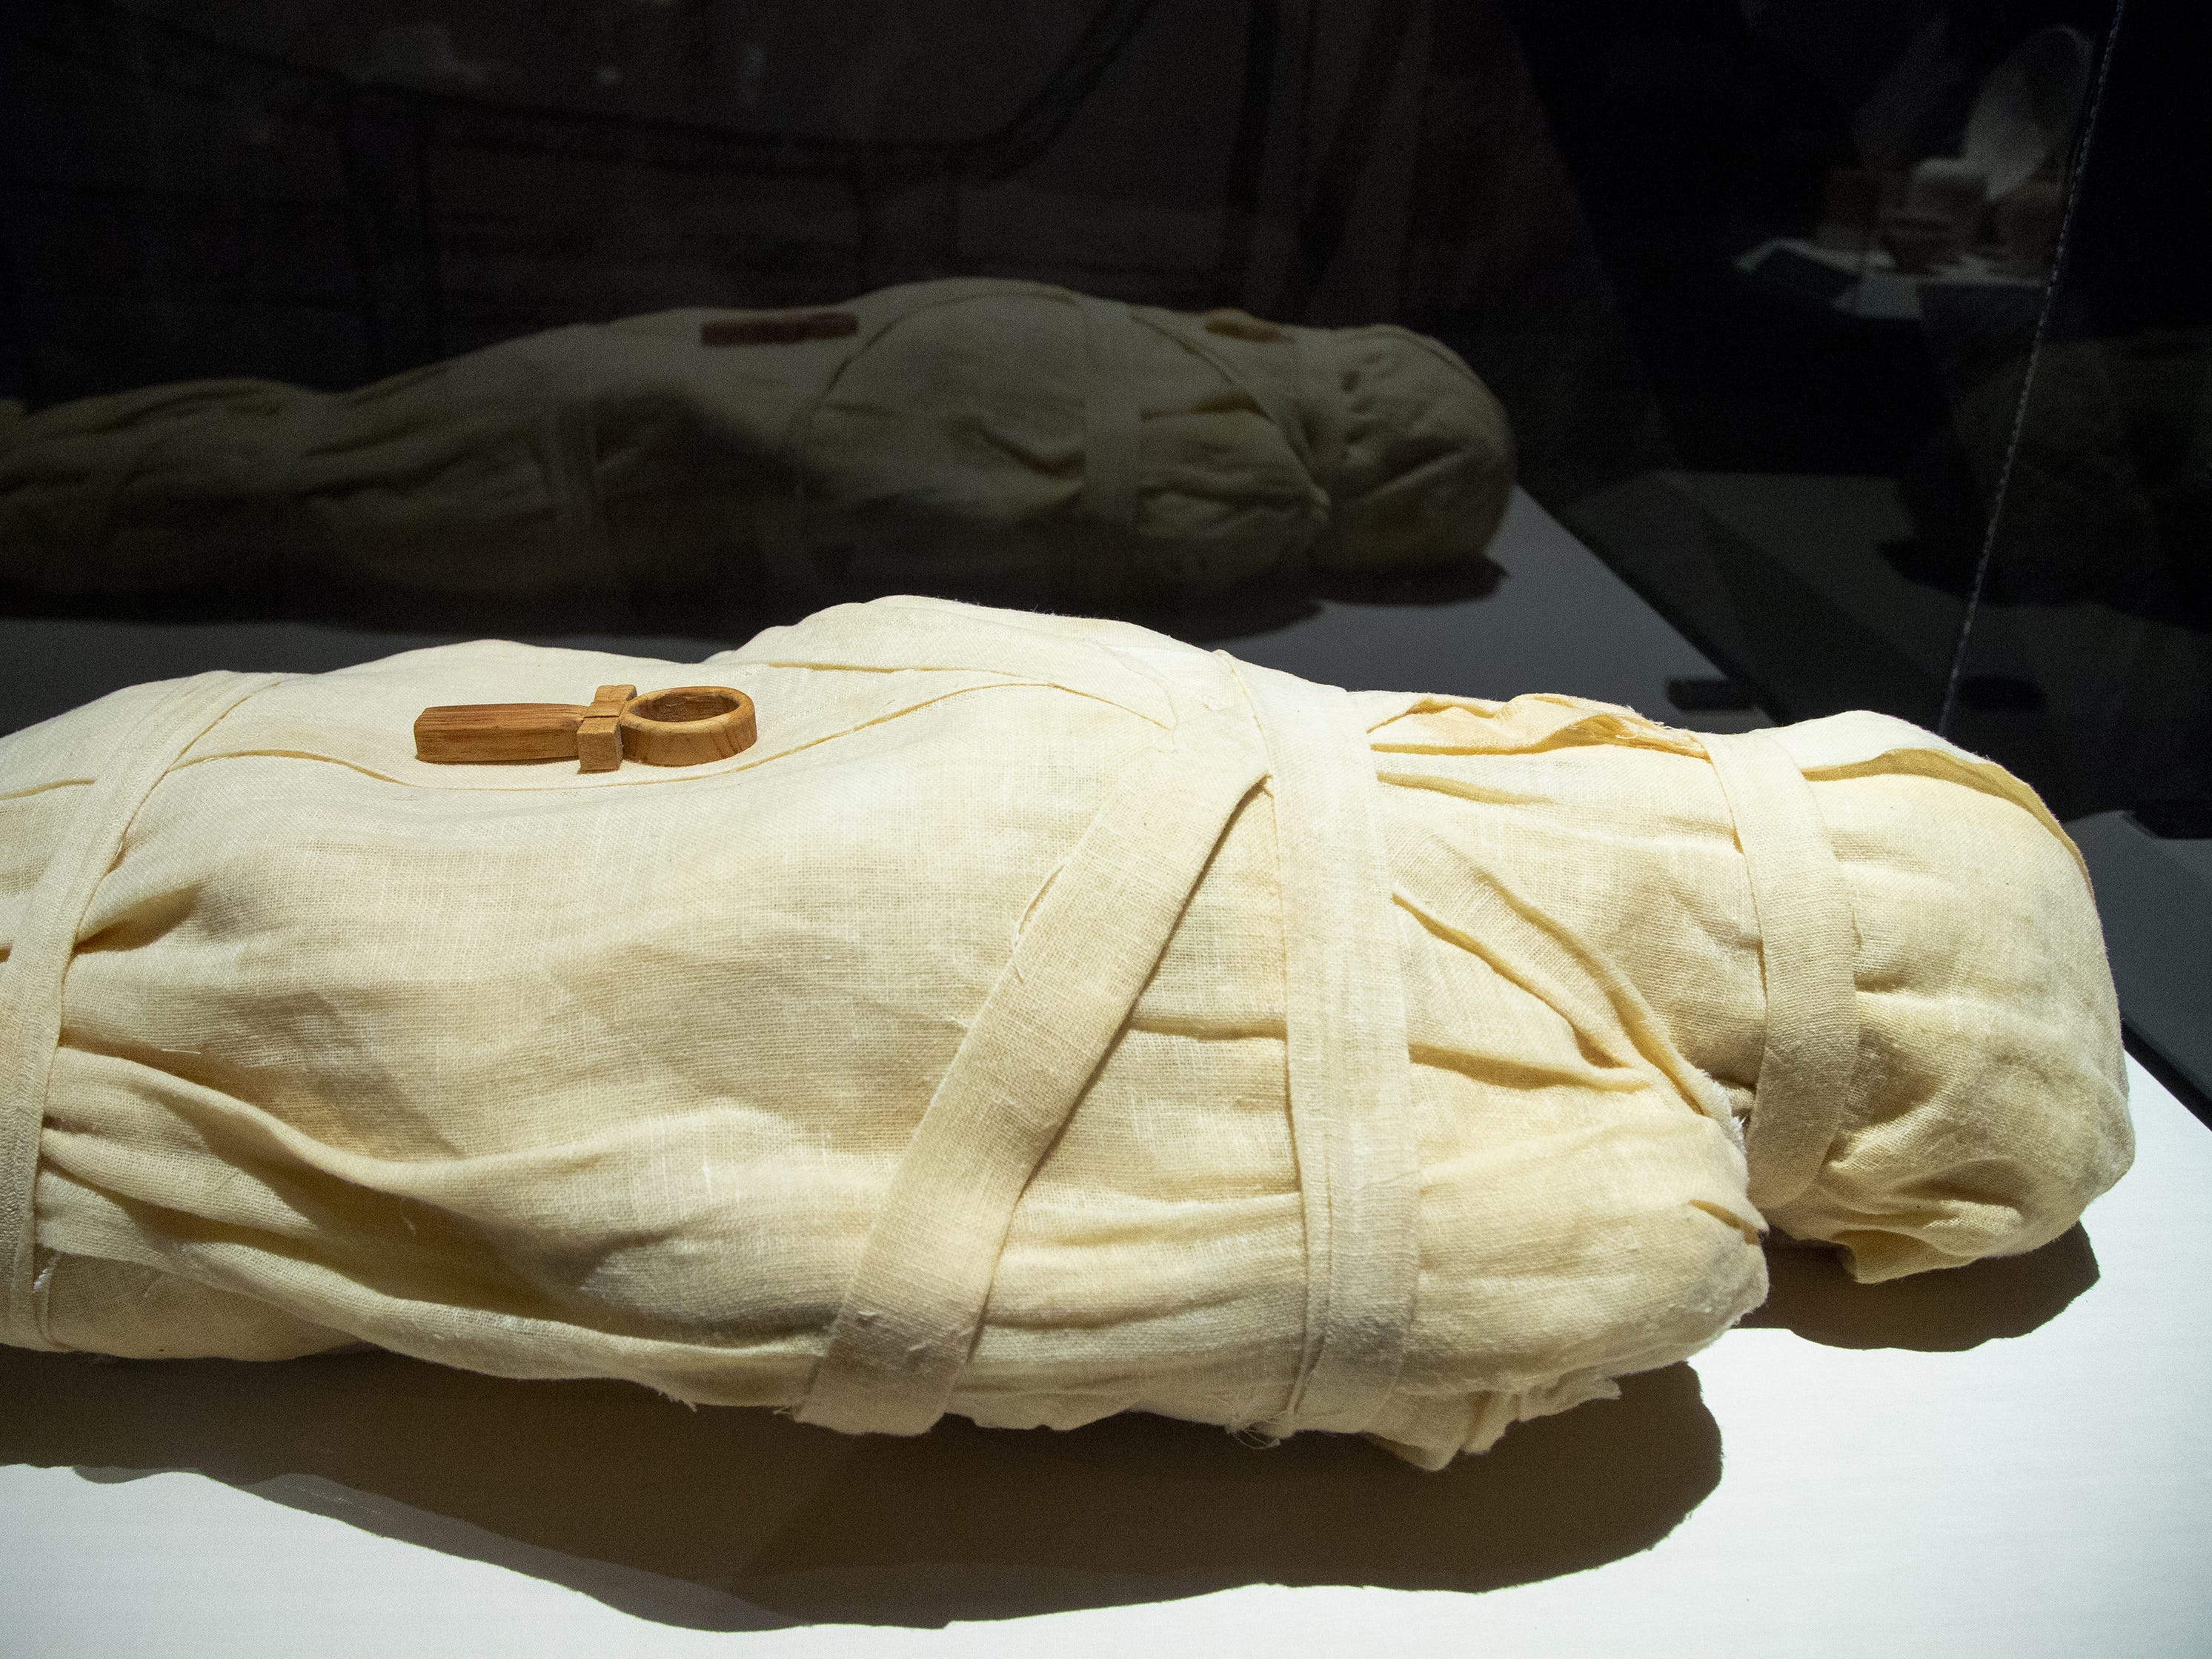 Mummies of the World: The Exhibition displays the first modern-day, ancient mummy at the Arizona Science Center. The exhibit includes mummies from Egypt, Europe and the U.S. and is open to the public from Feb. 10 through Sept. 2, 2019.